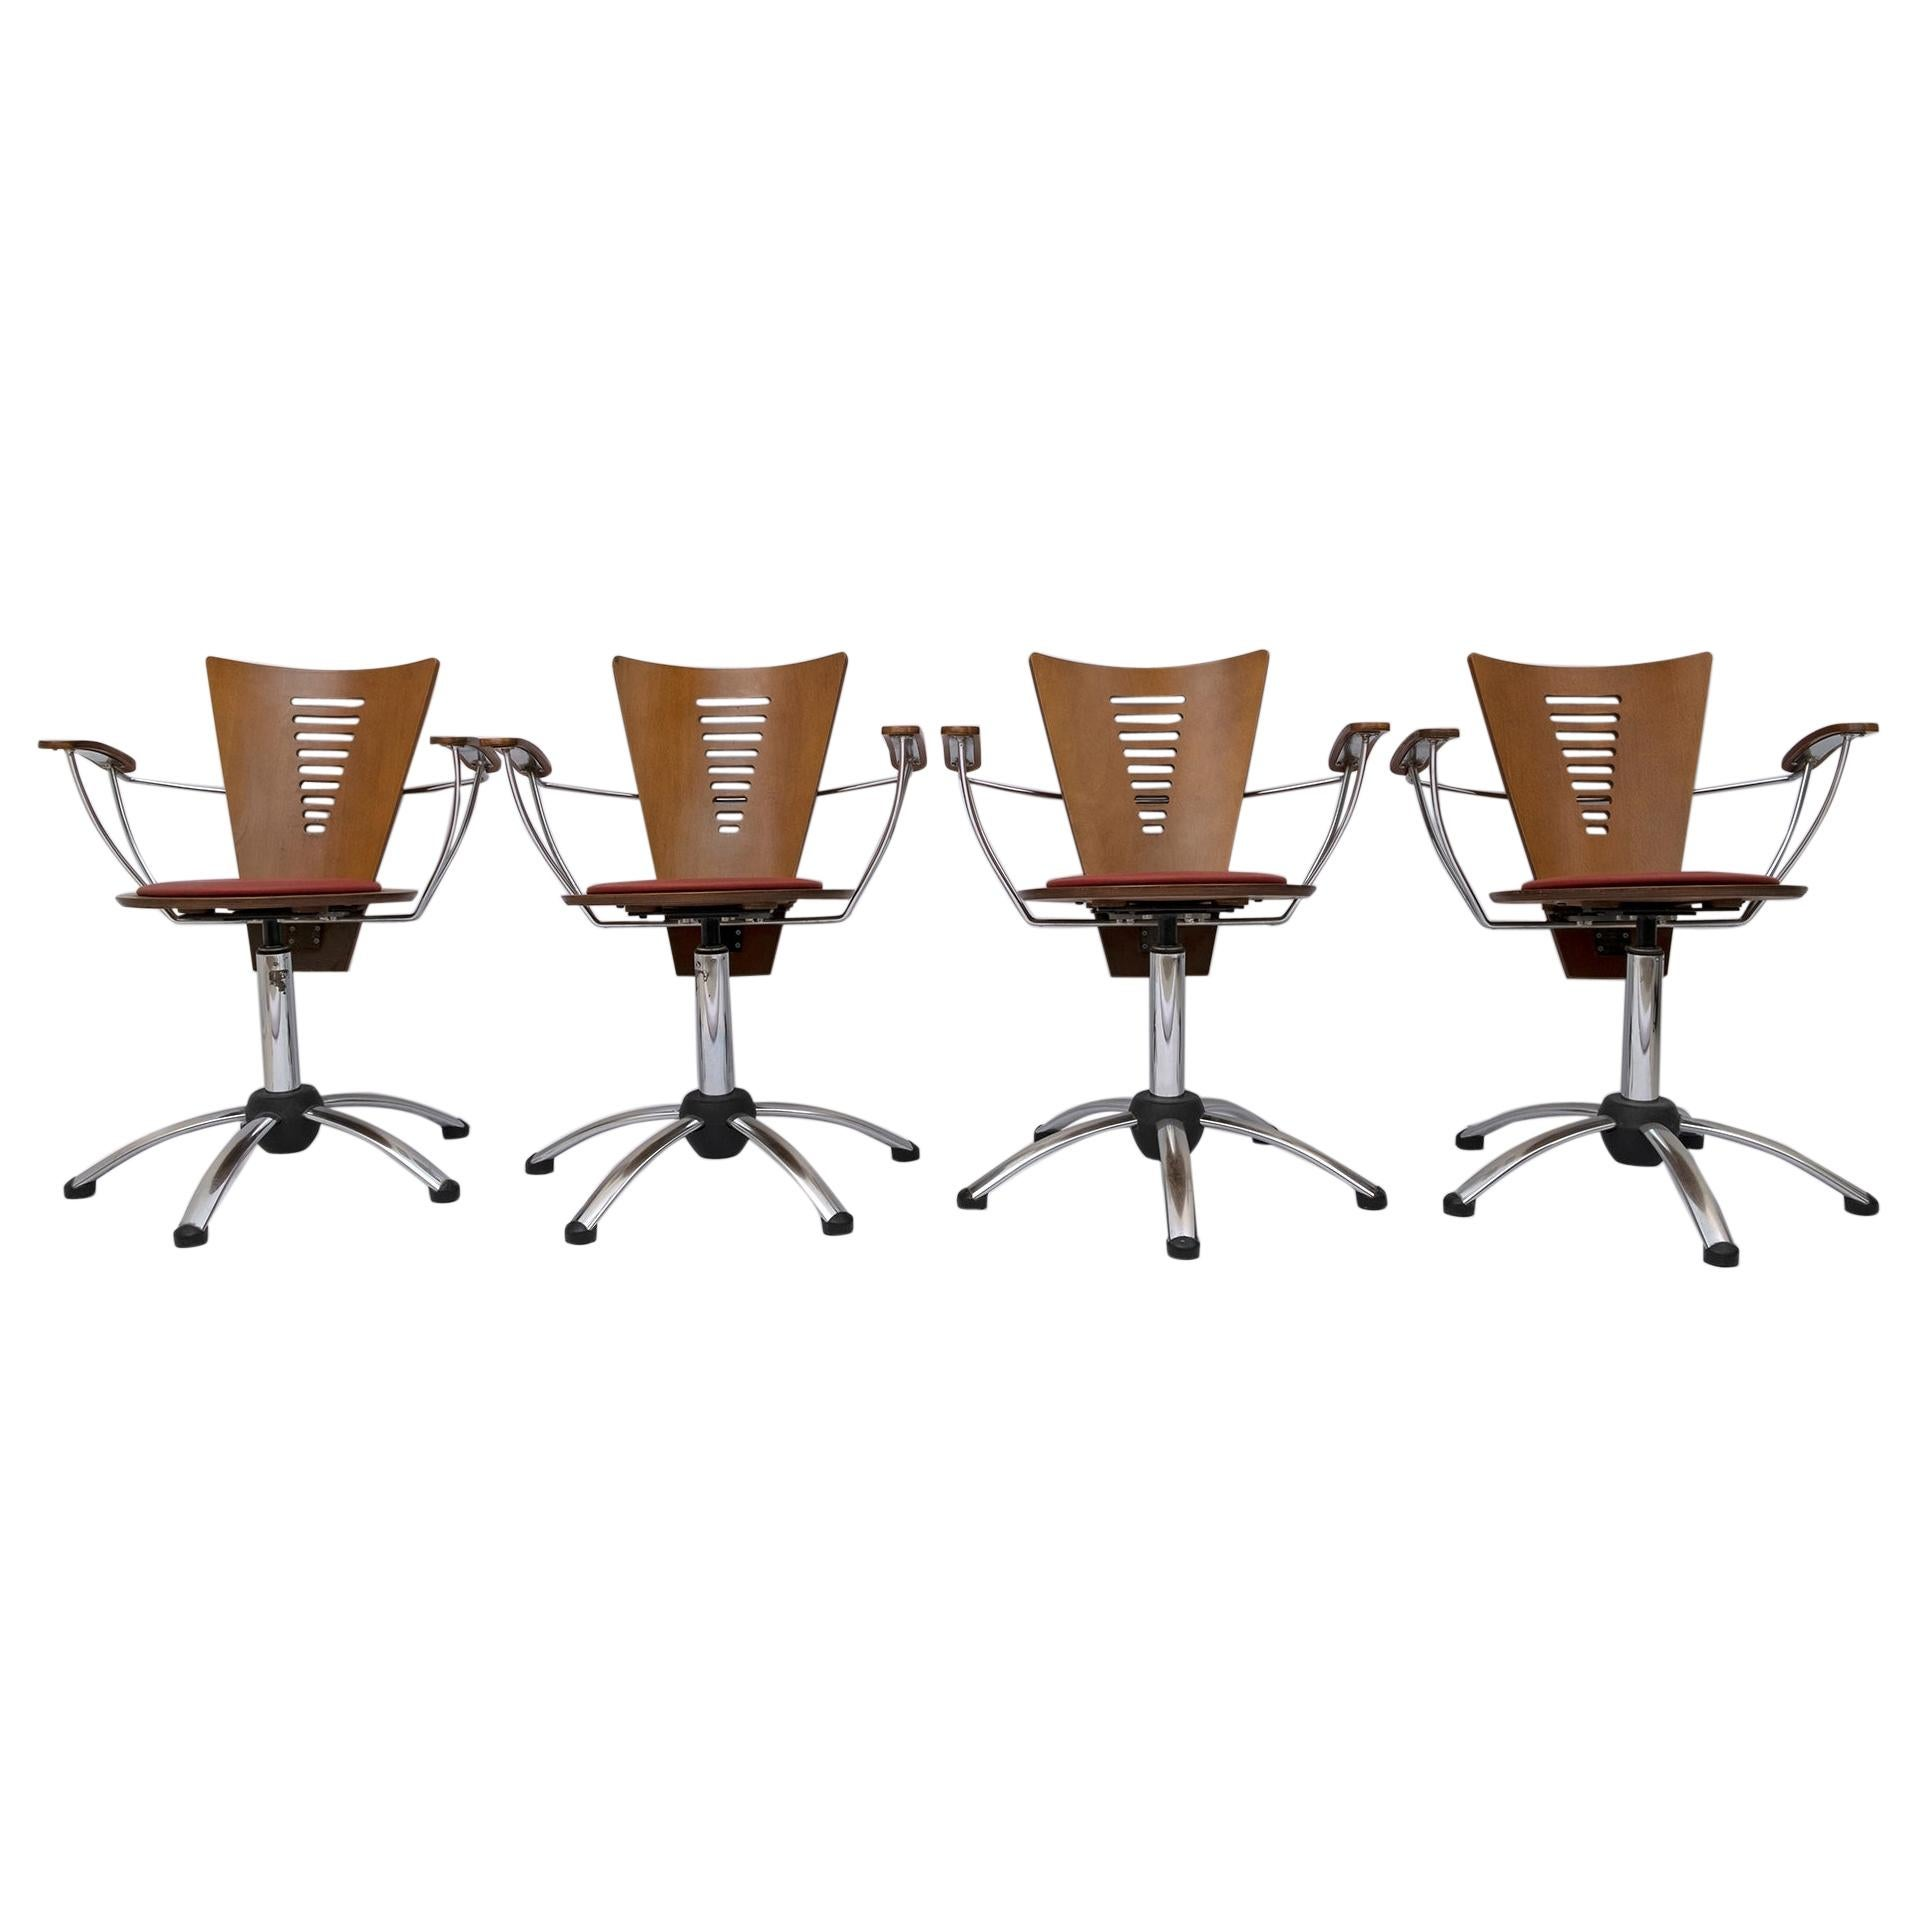 Four Postmodern Italian Swivel Chairs Curved Wood and Chromed Metal, 1980s